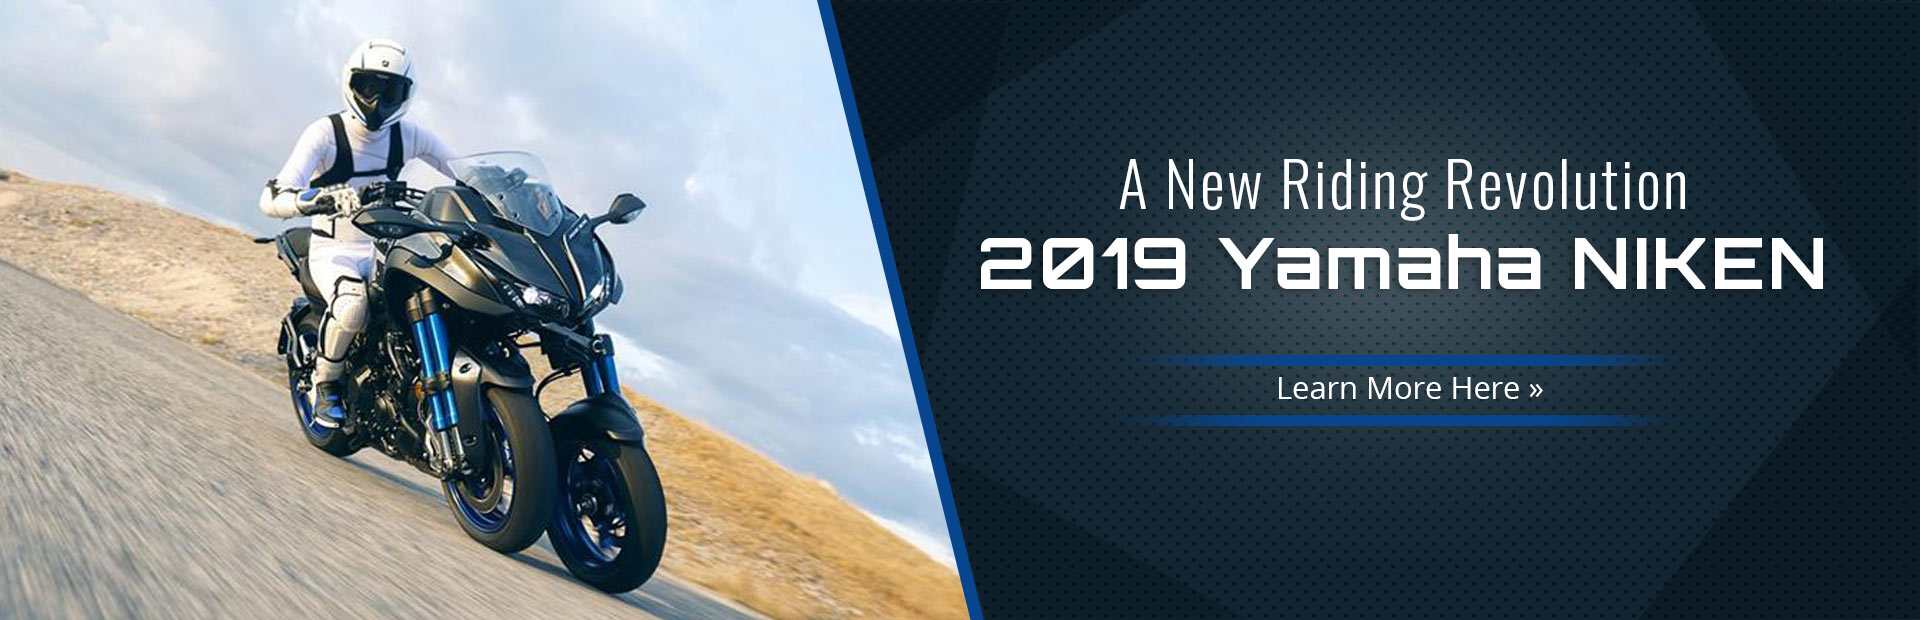 2019 Yamaha NIKEN™: Click here to learn more.